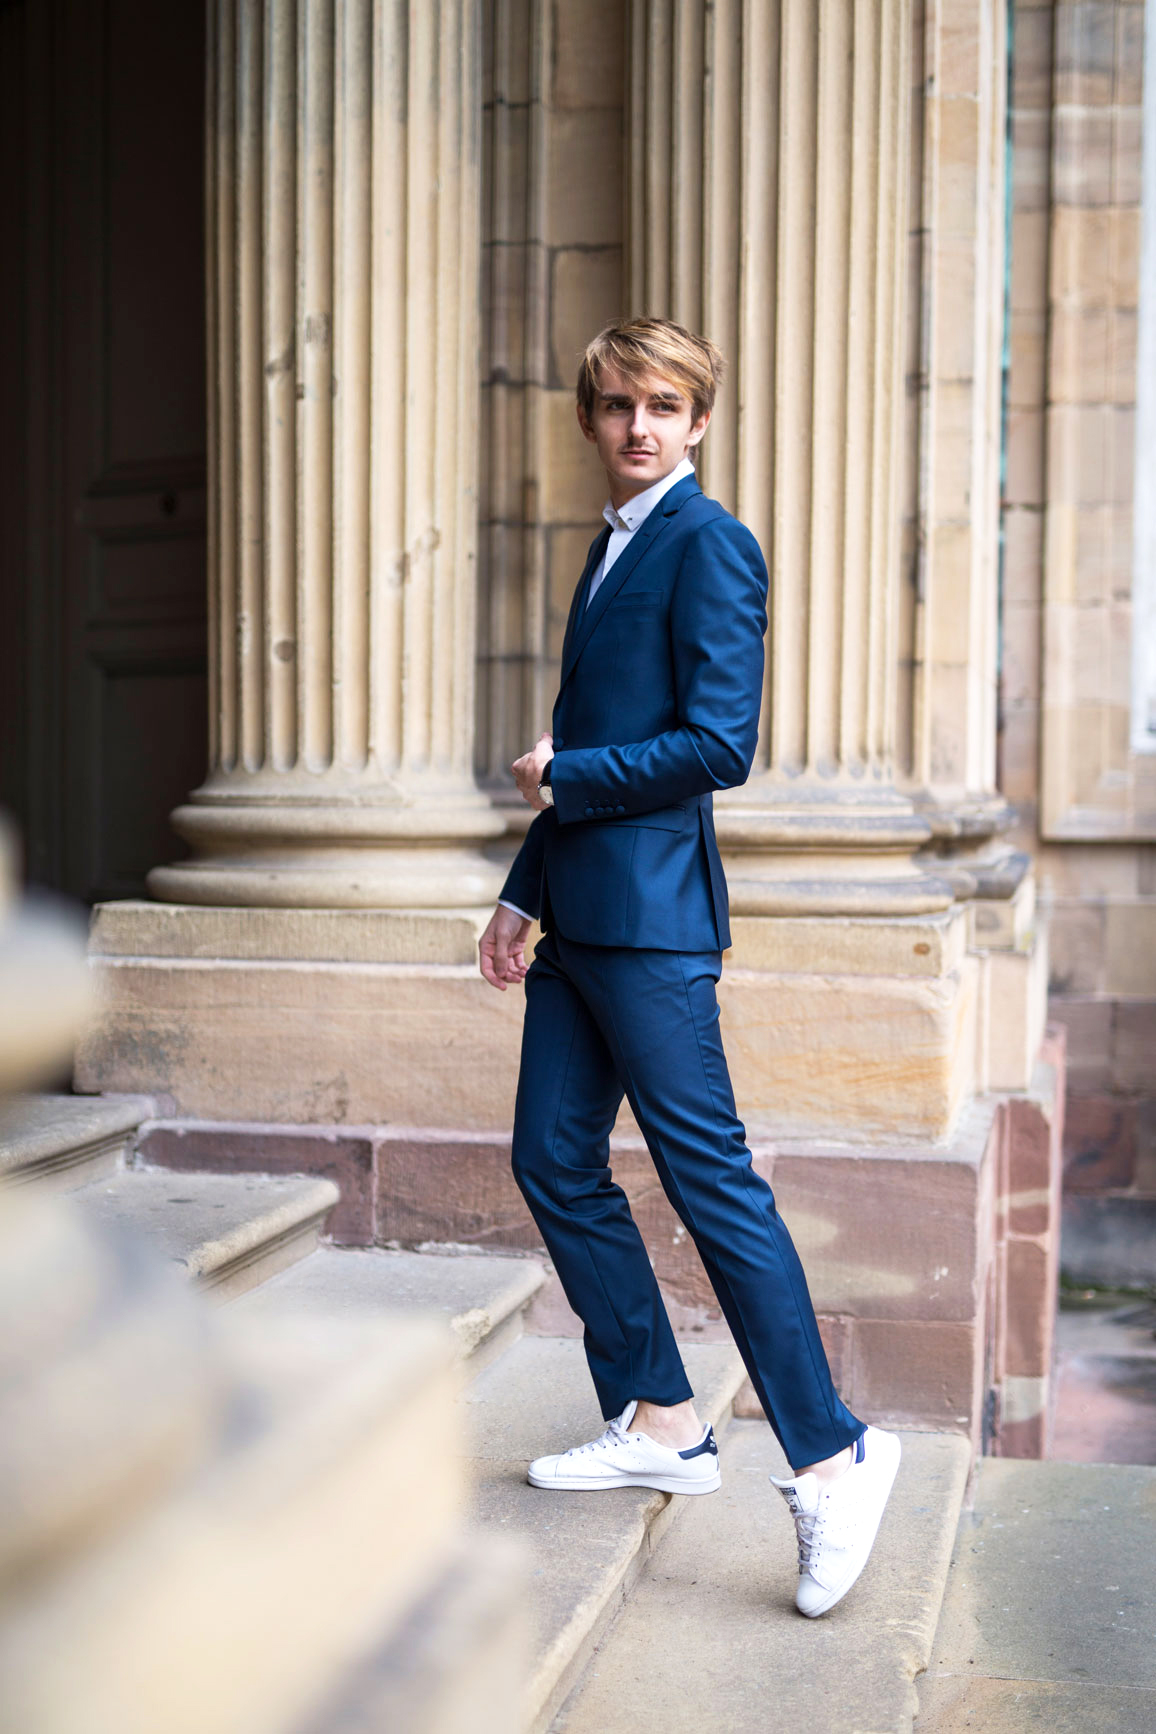 blog-mode-strasbourg-homme-lifestyle-costume-sneakers-baskets-suit-style-tendances-fashion-blogger-french-faubourg-saint-sulpice-paris-blog-6